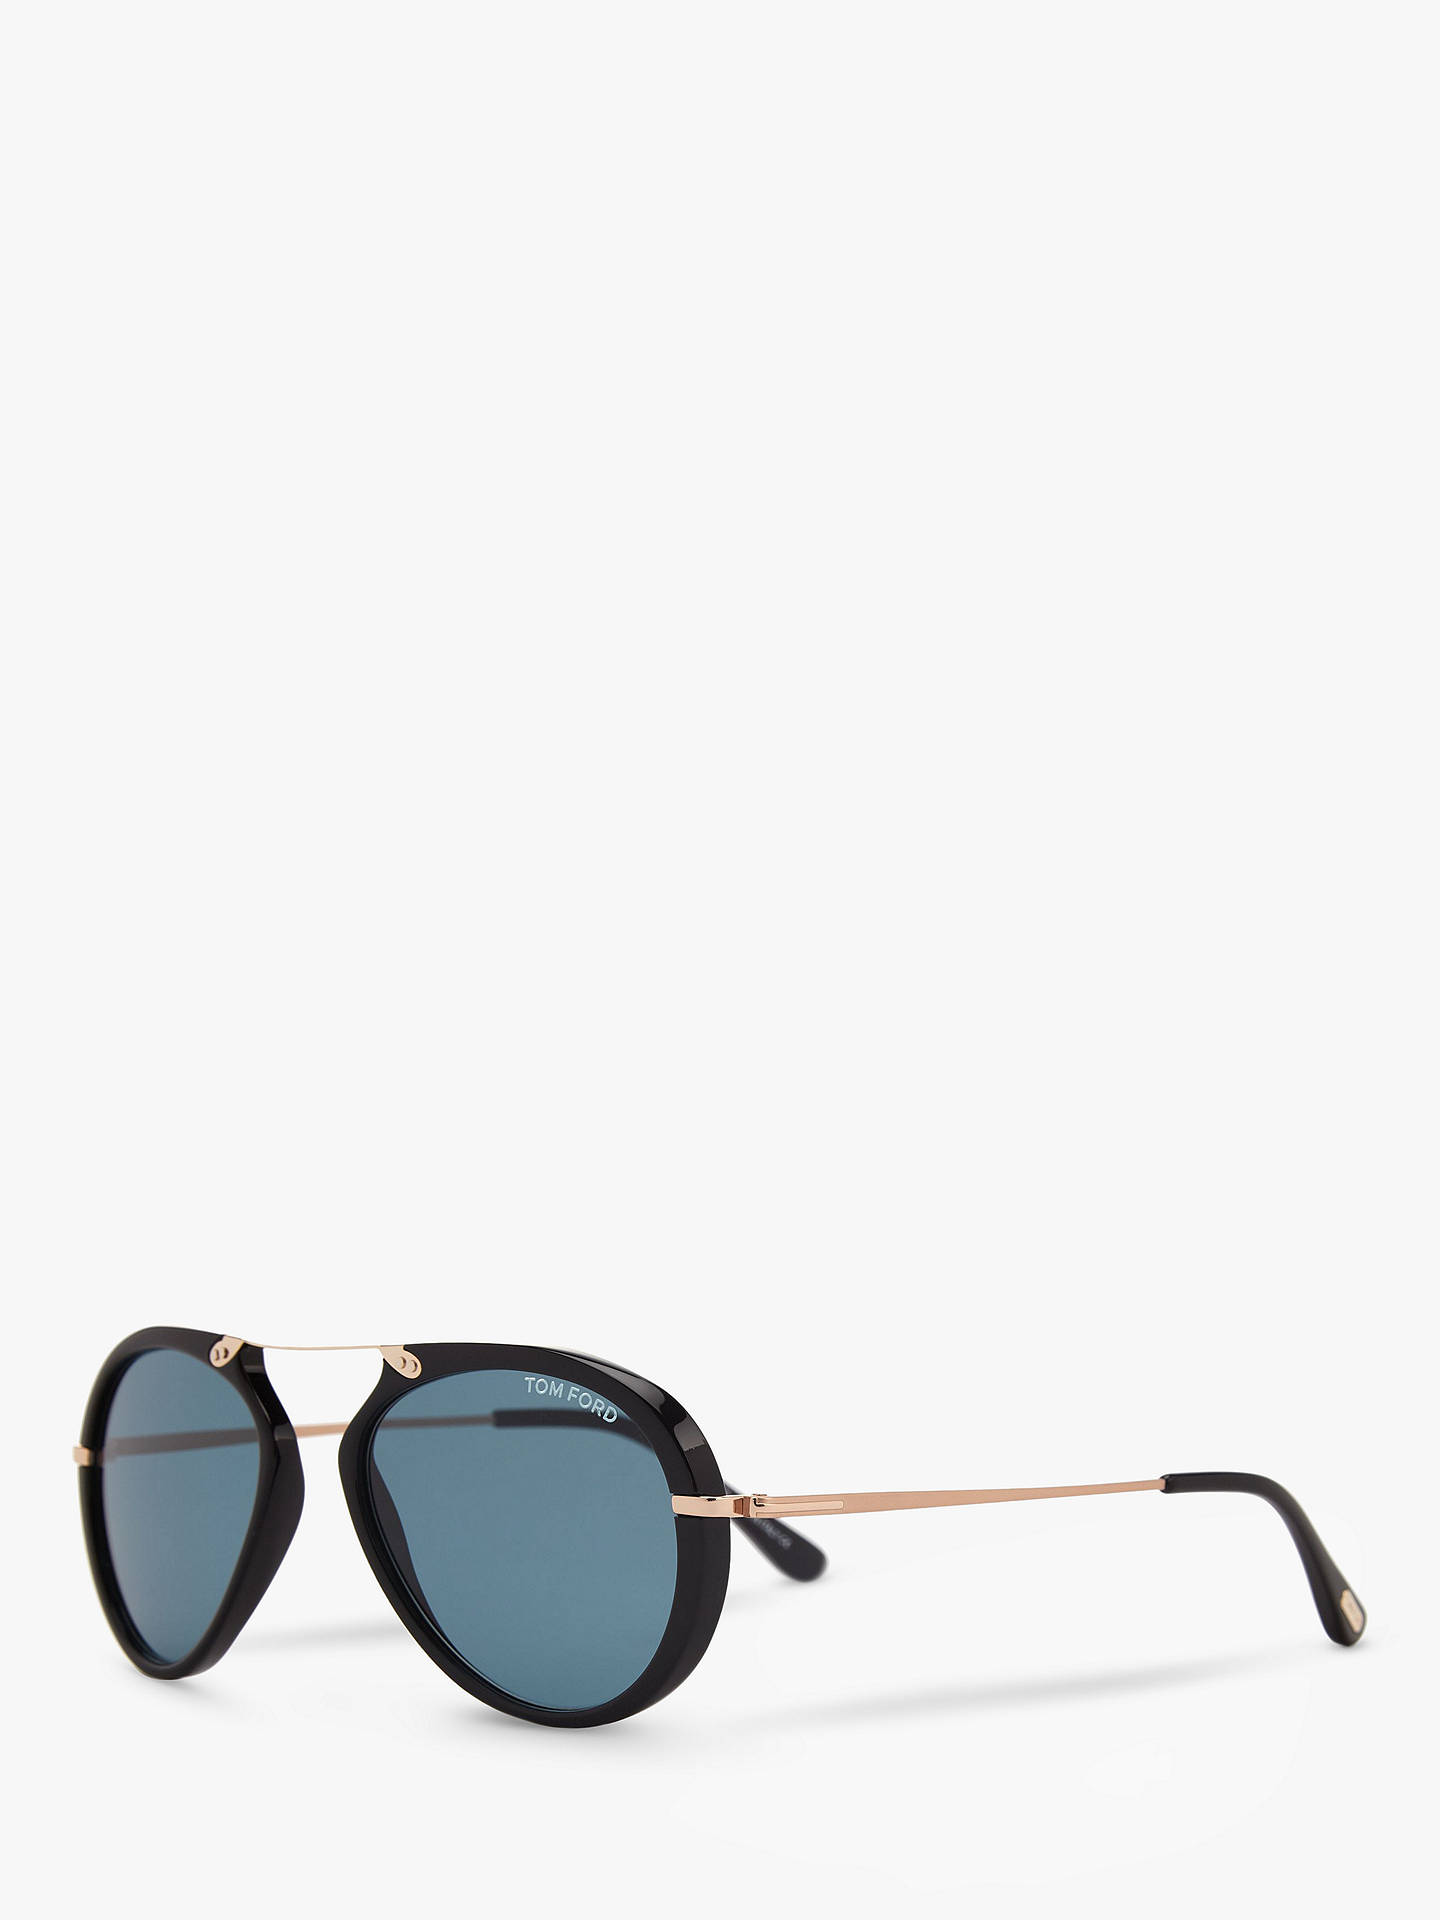 7f1d9b6457 Buy TOM FORD FT0473 Aaron Aviator Sunglasses